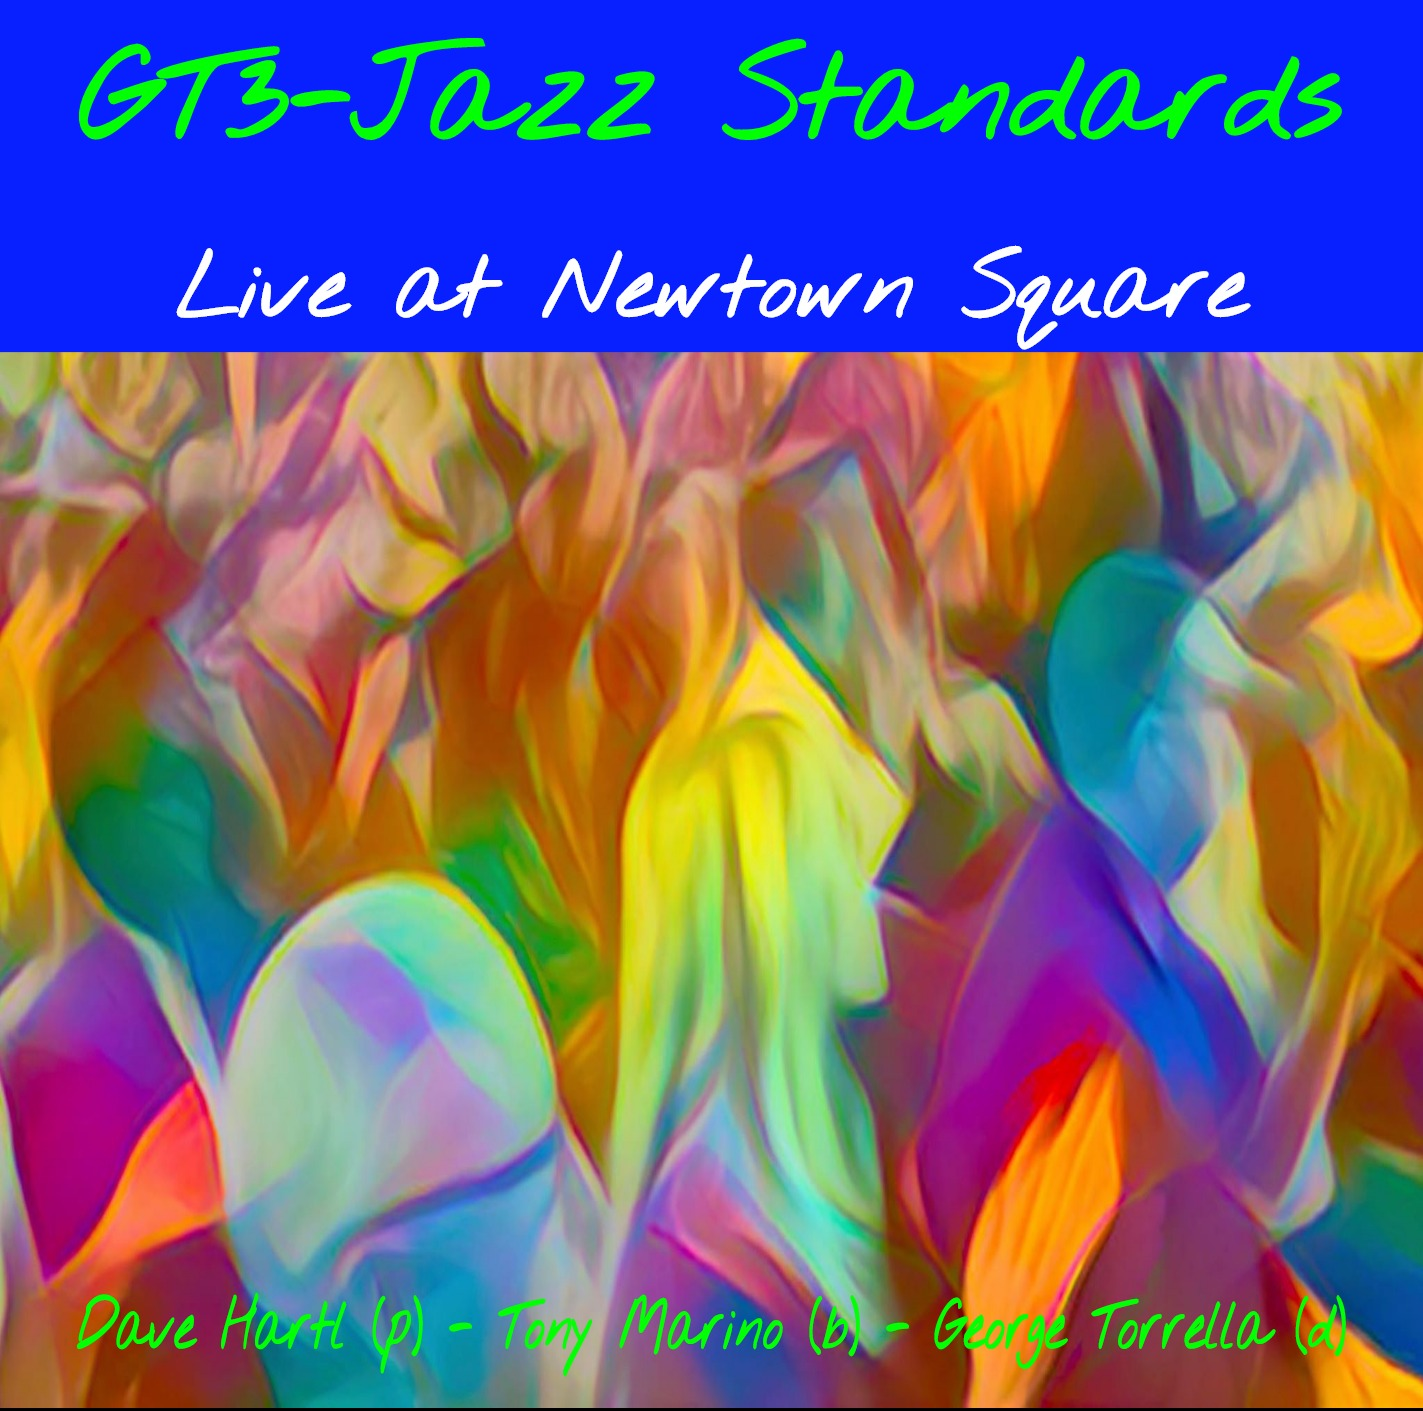 Live at Newtown Square